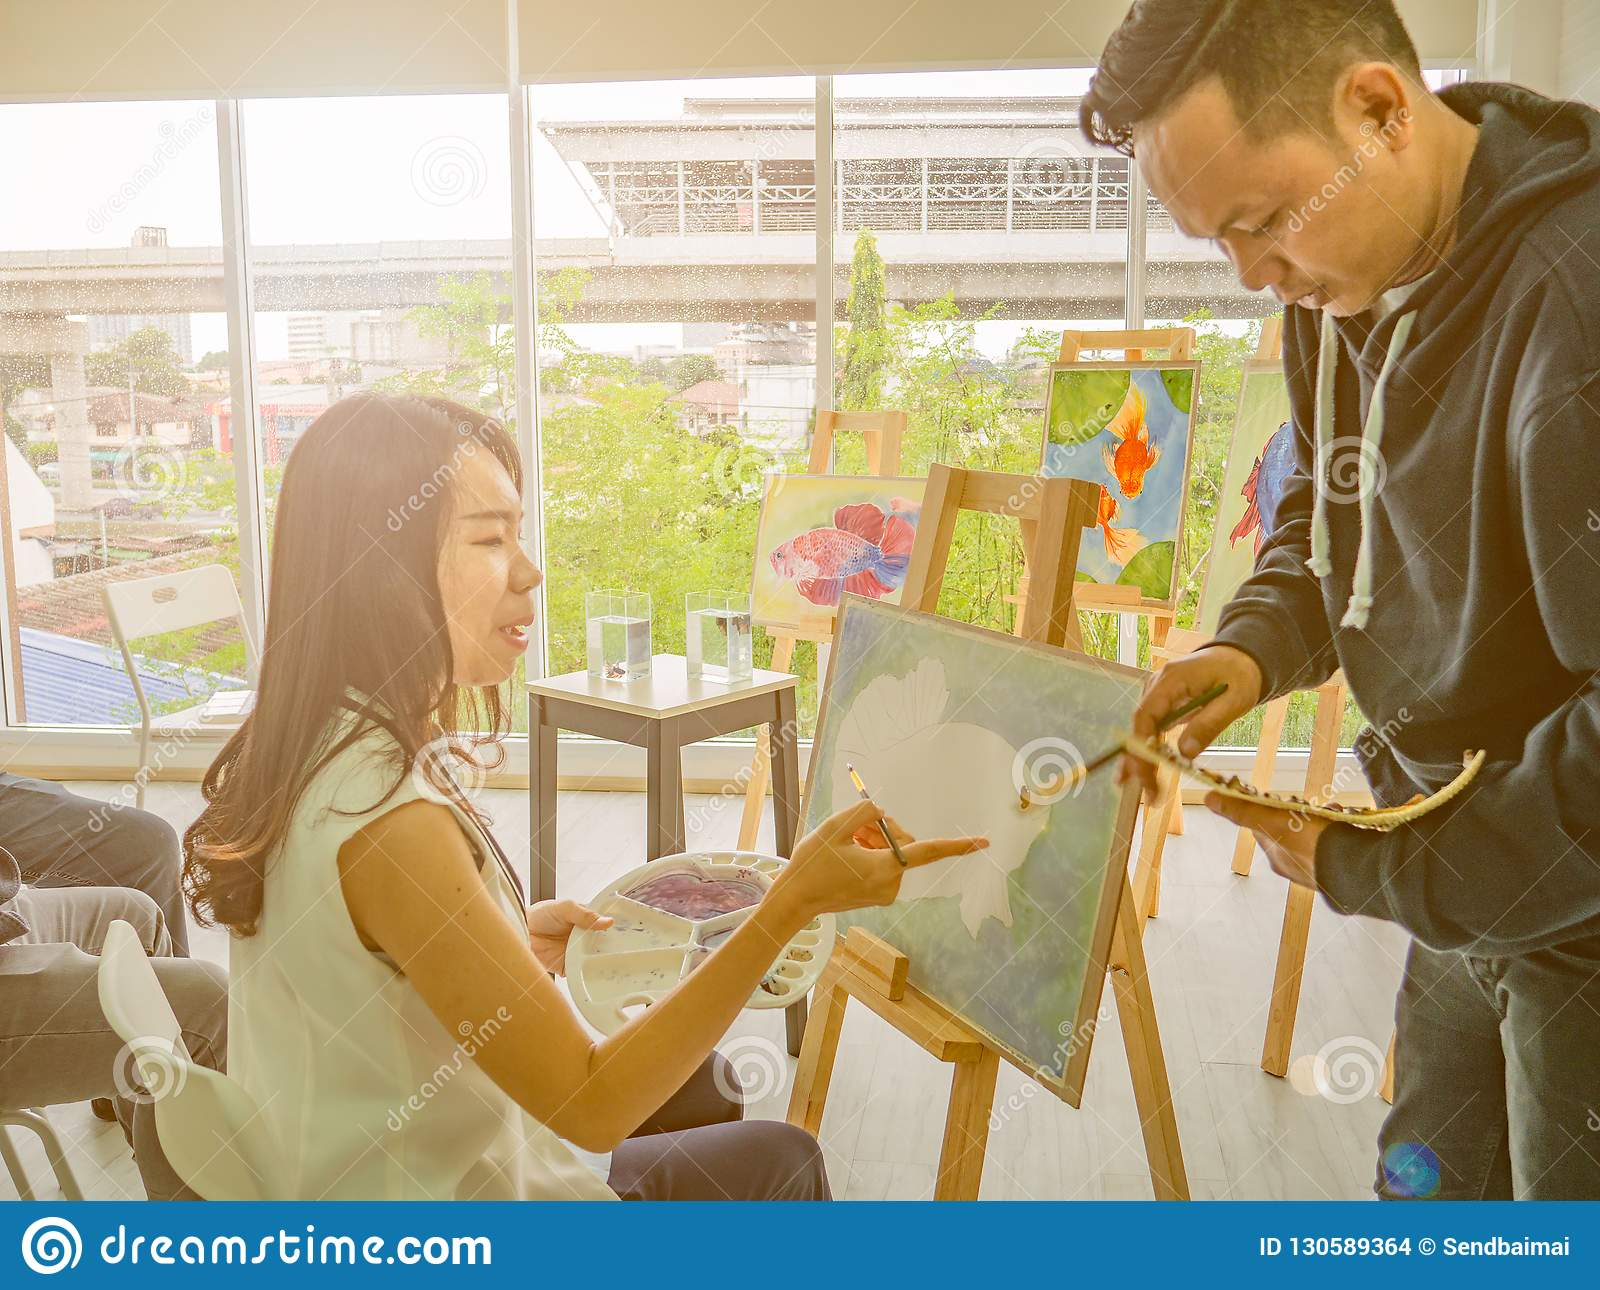 Handsome Young Asian man or water color artist Teaching how to paint and artist student Learning the class